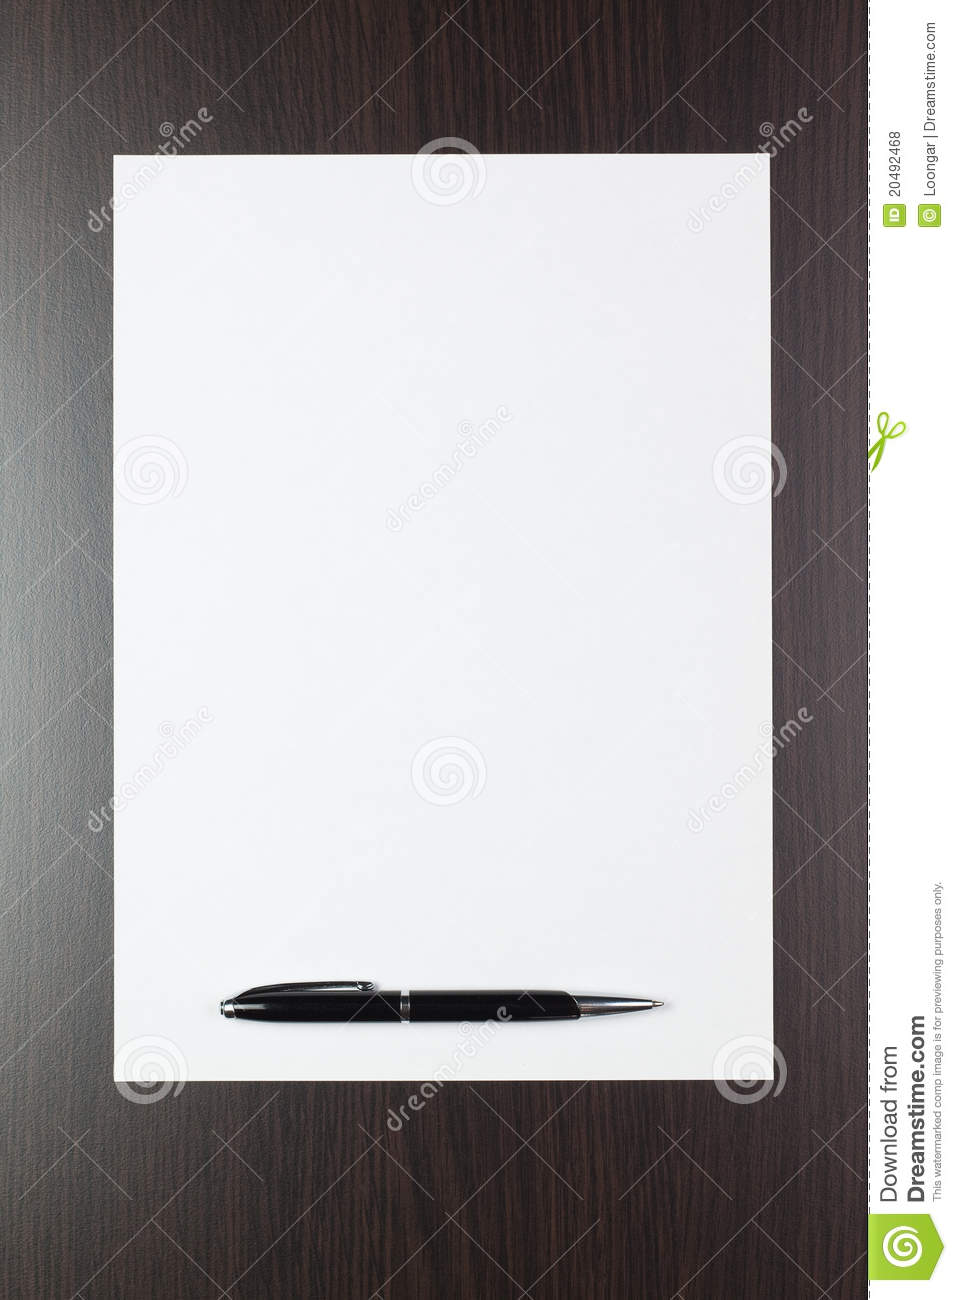 blank sheet of paper stock photo  image of clean  message